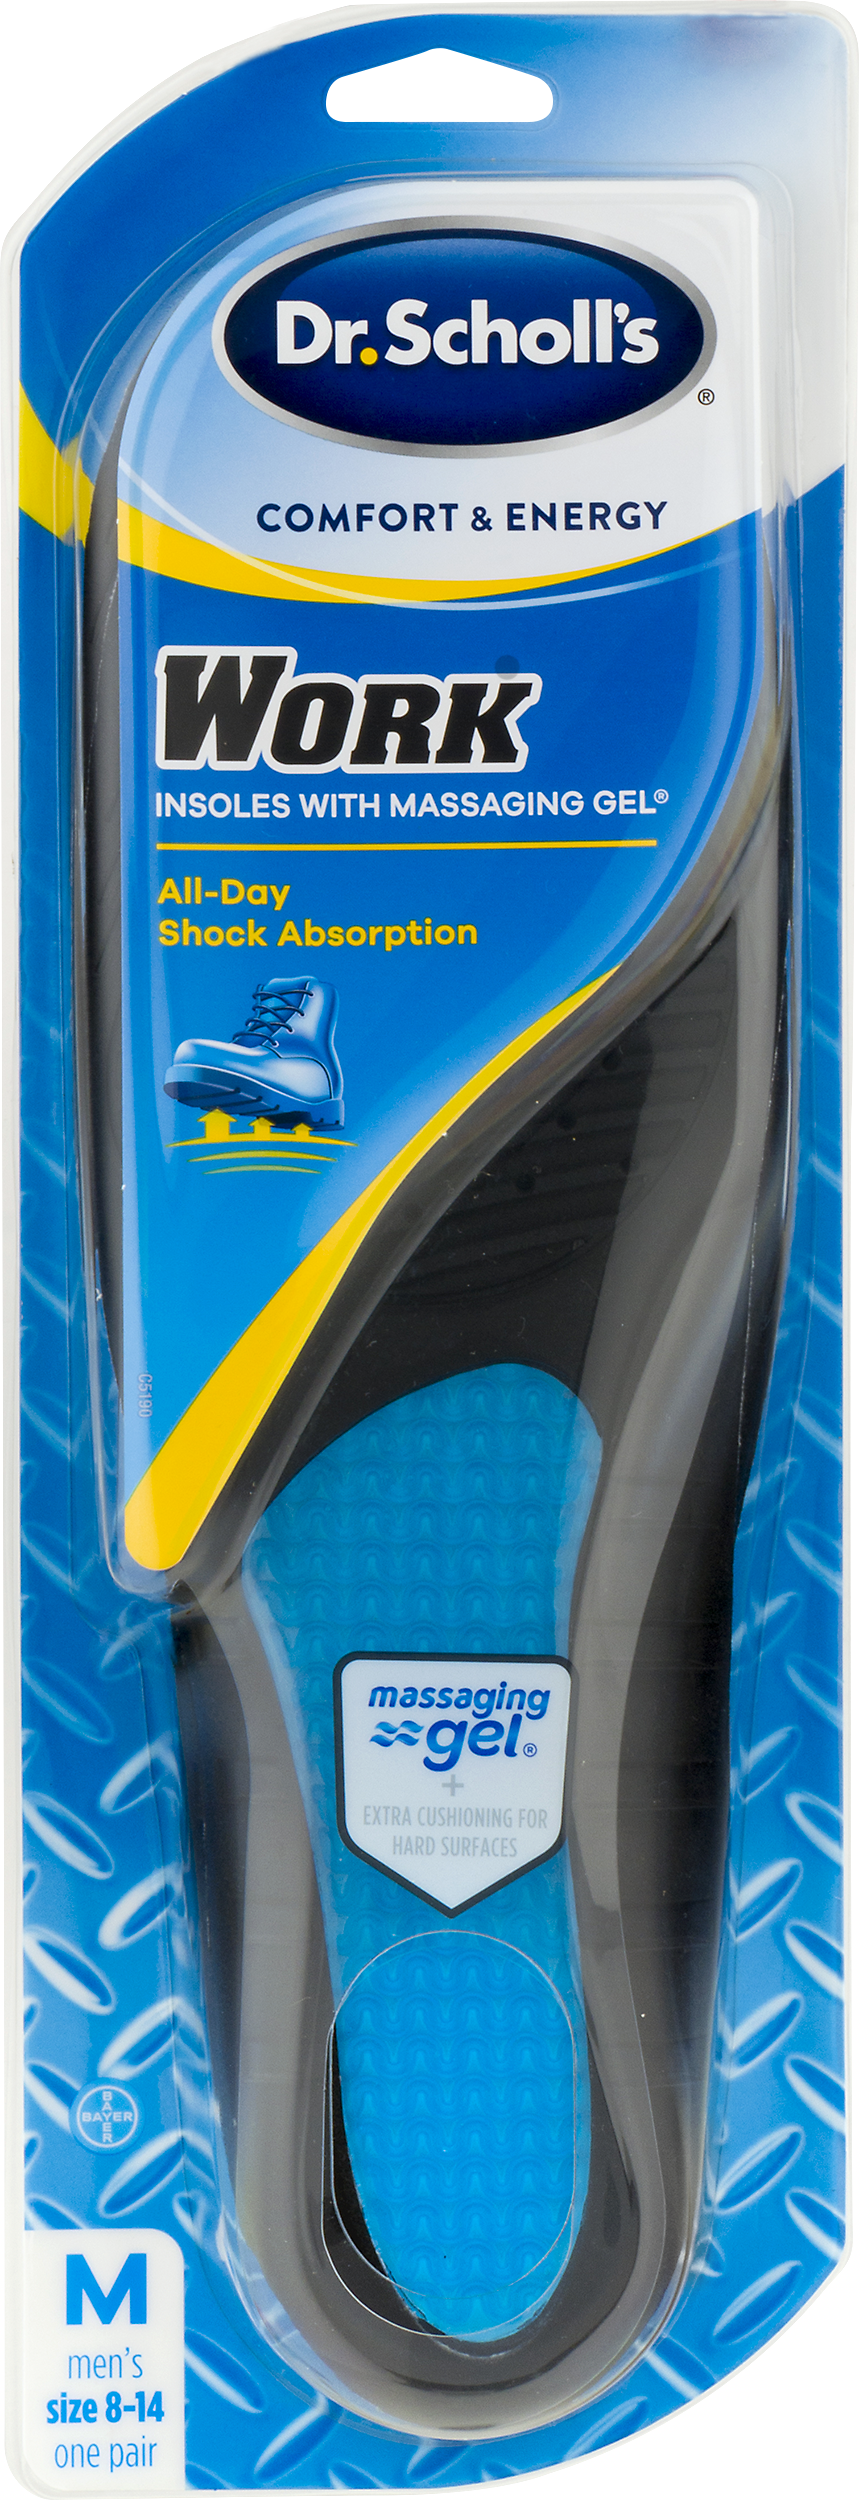 Dr. Scholls Comfort and Energy Work Insoles for Men, 1 Pair, Size 8-14 by Bayer Healthcare LLC